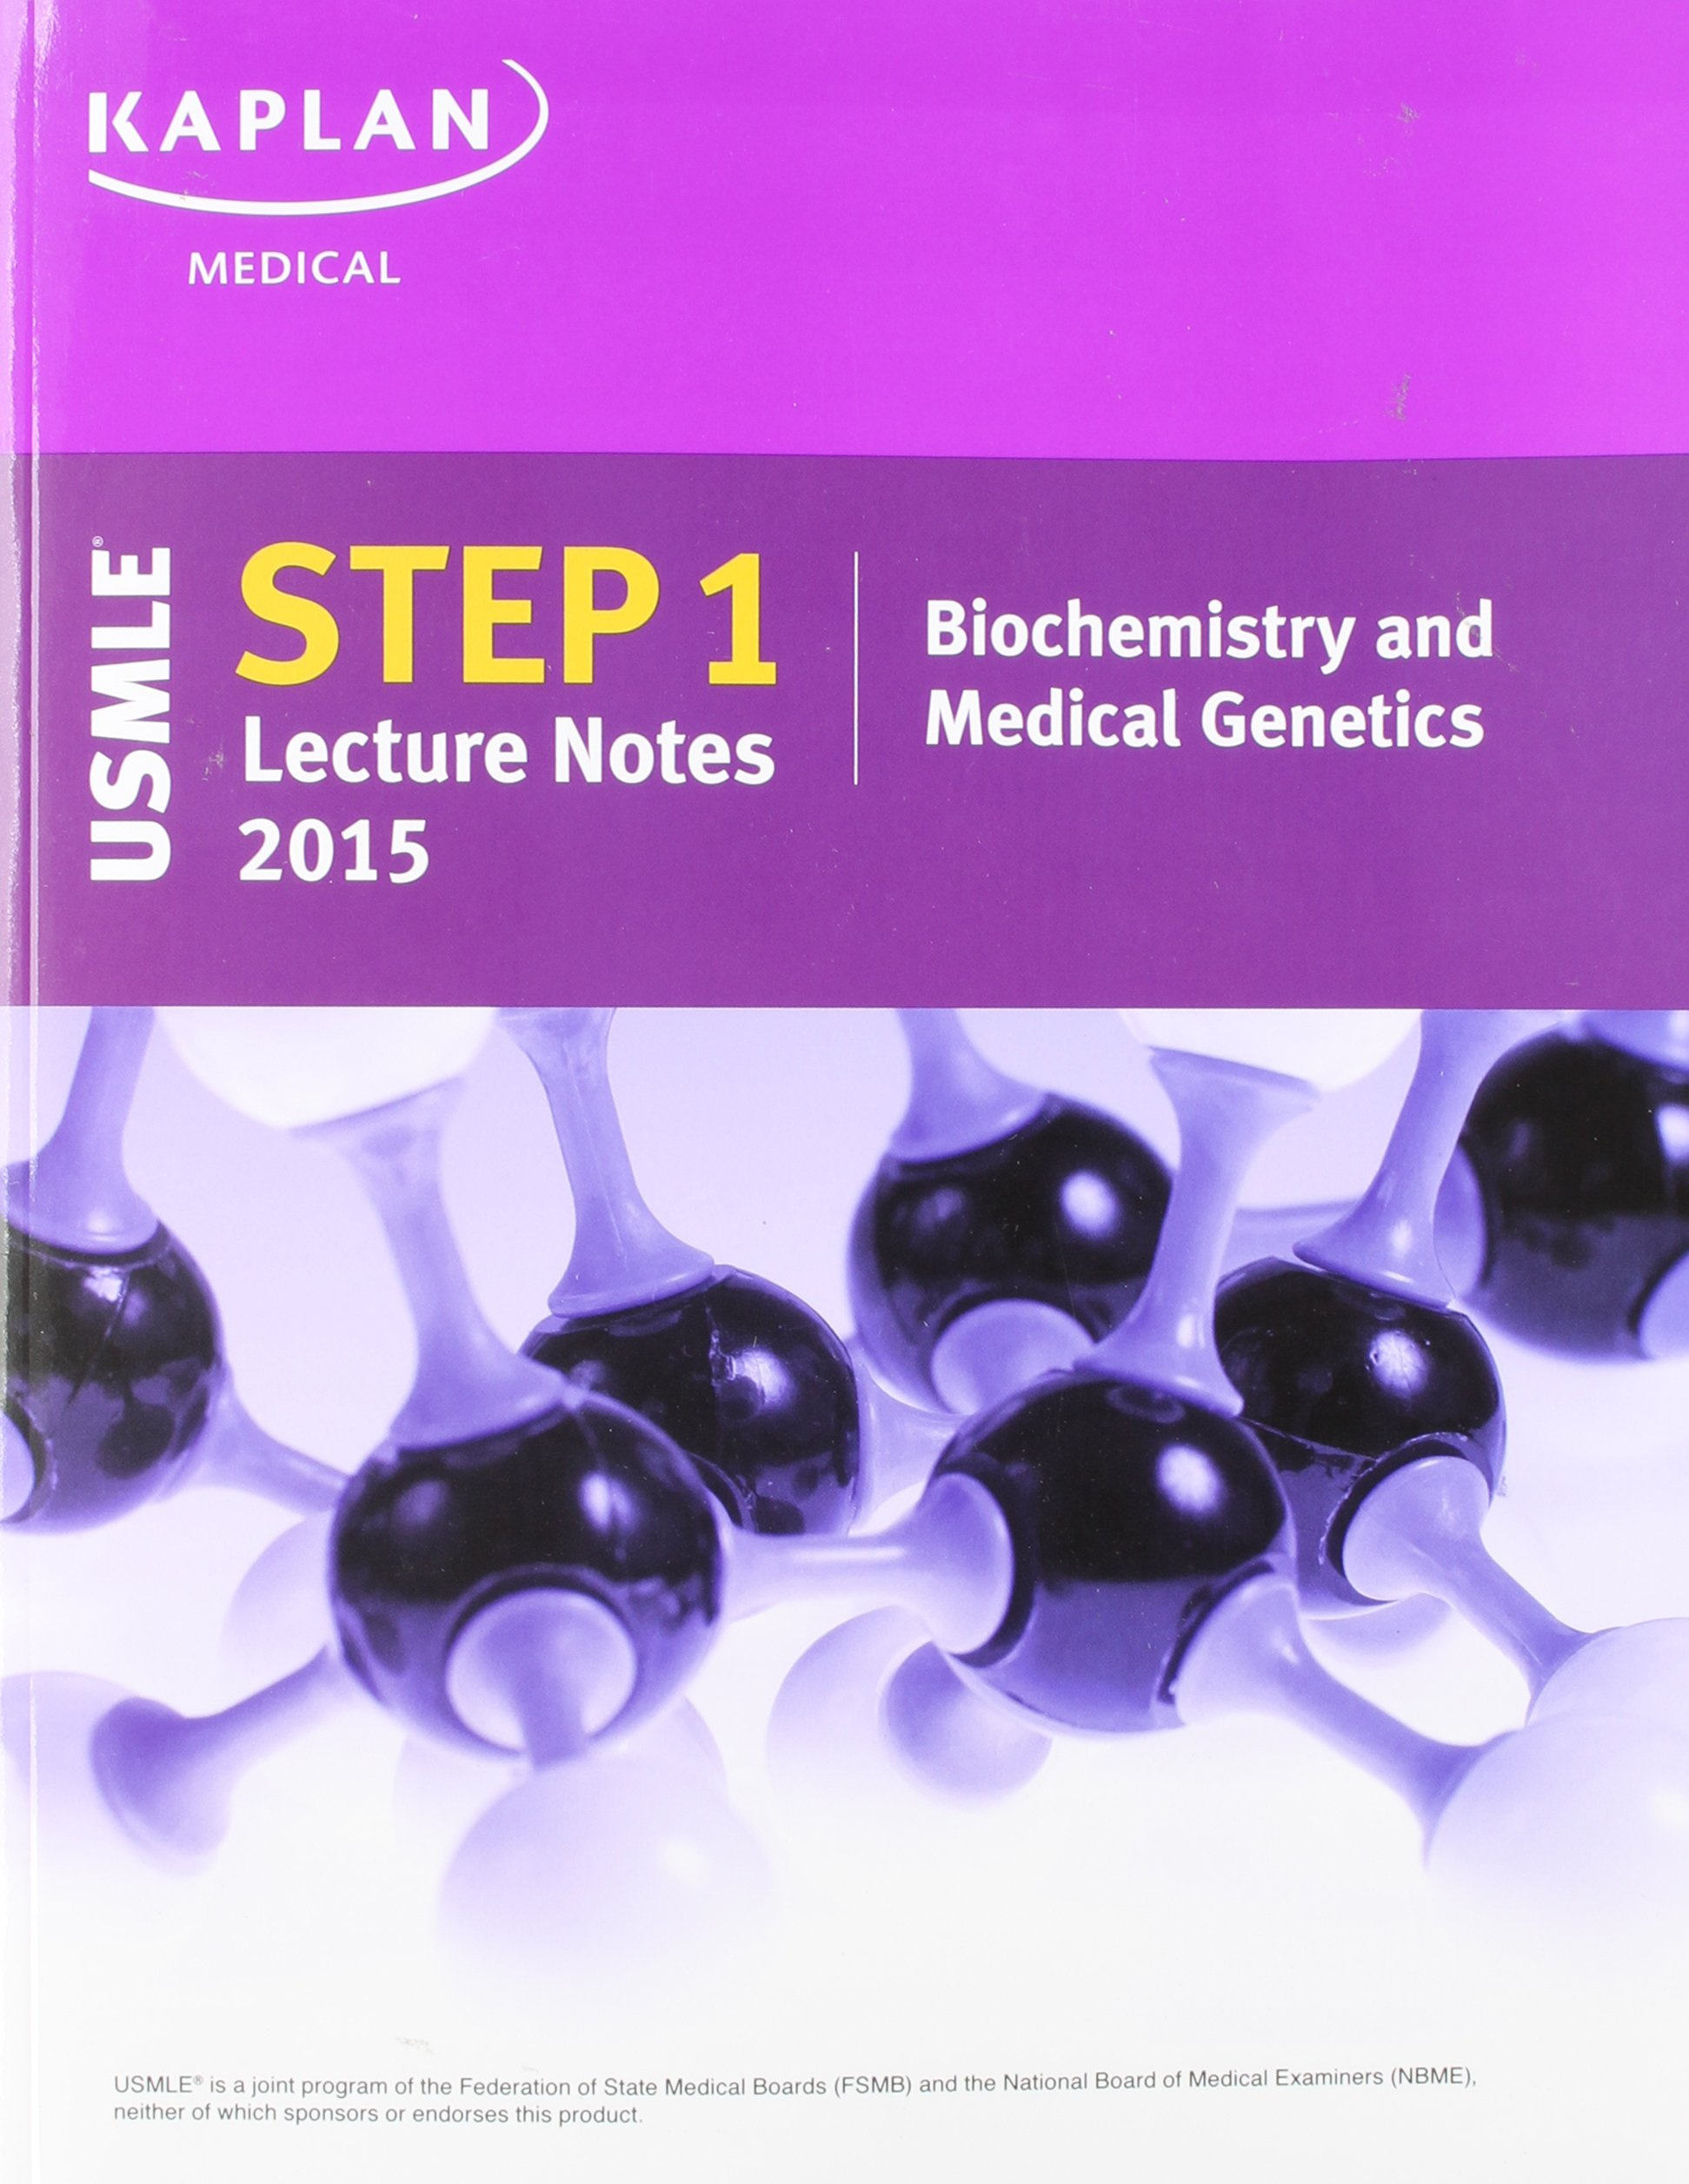 Kaplan USMLE Step 1 Lecture Notes 2015 Biochemistry and